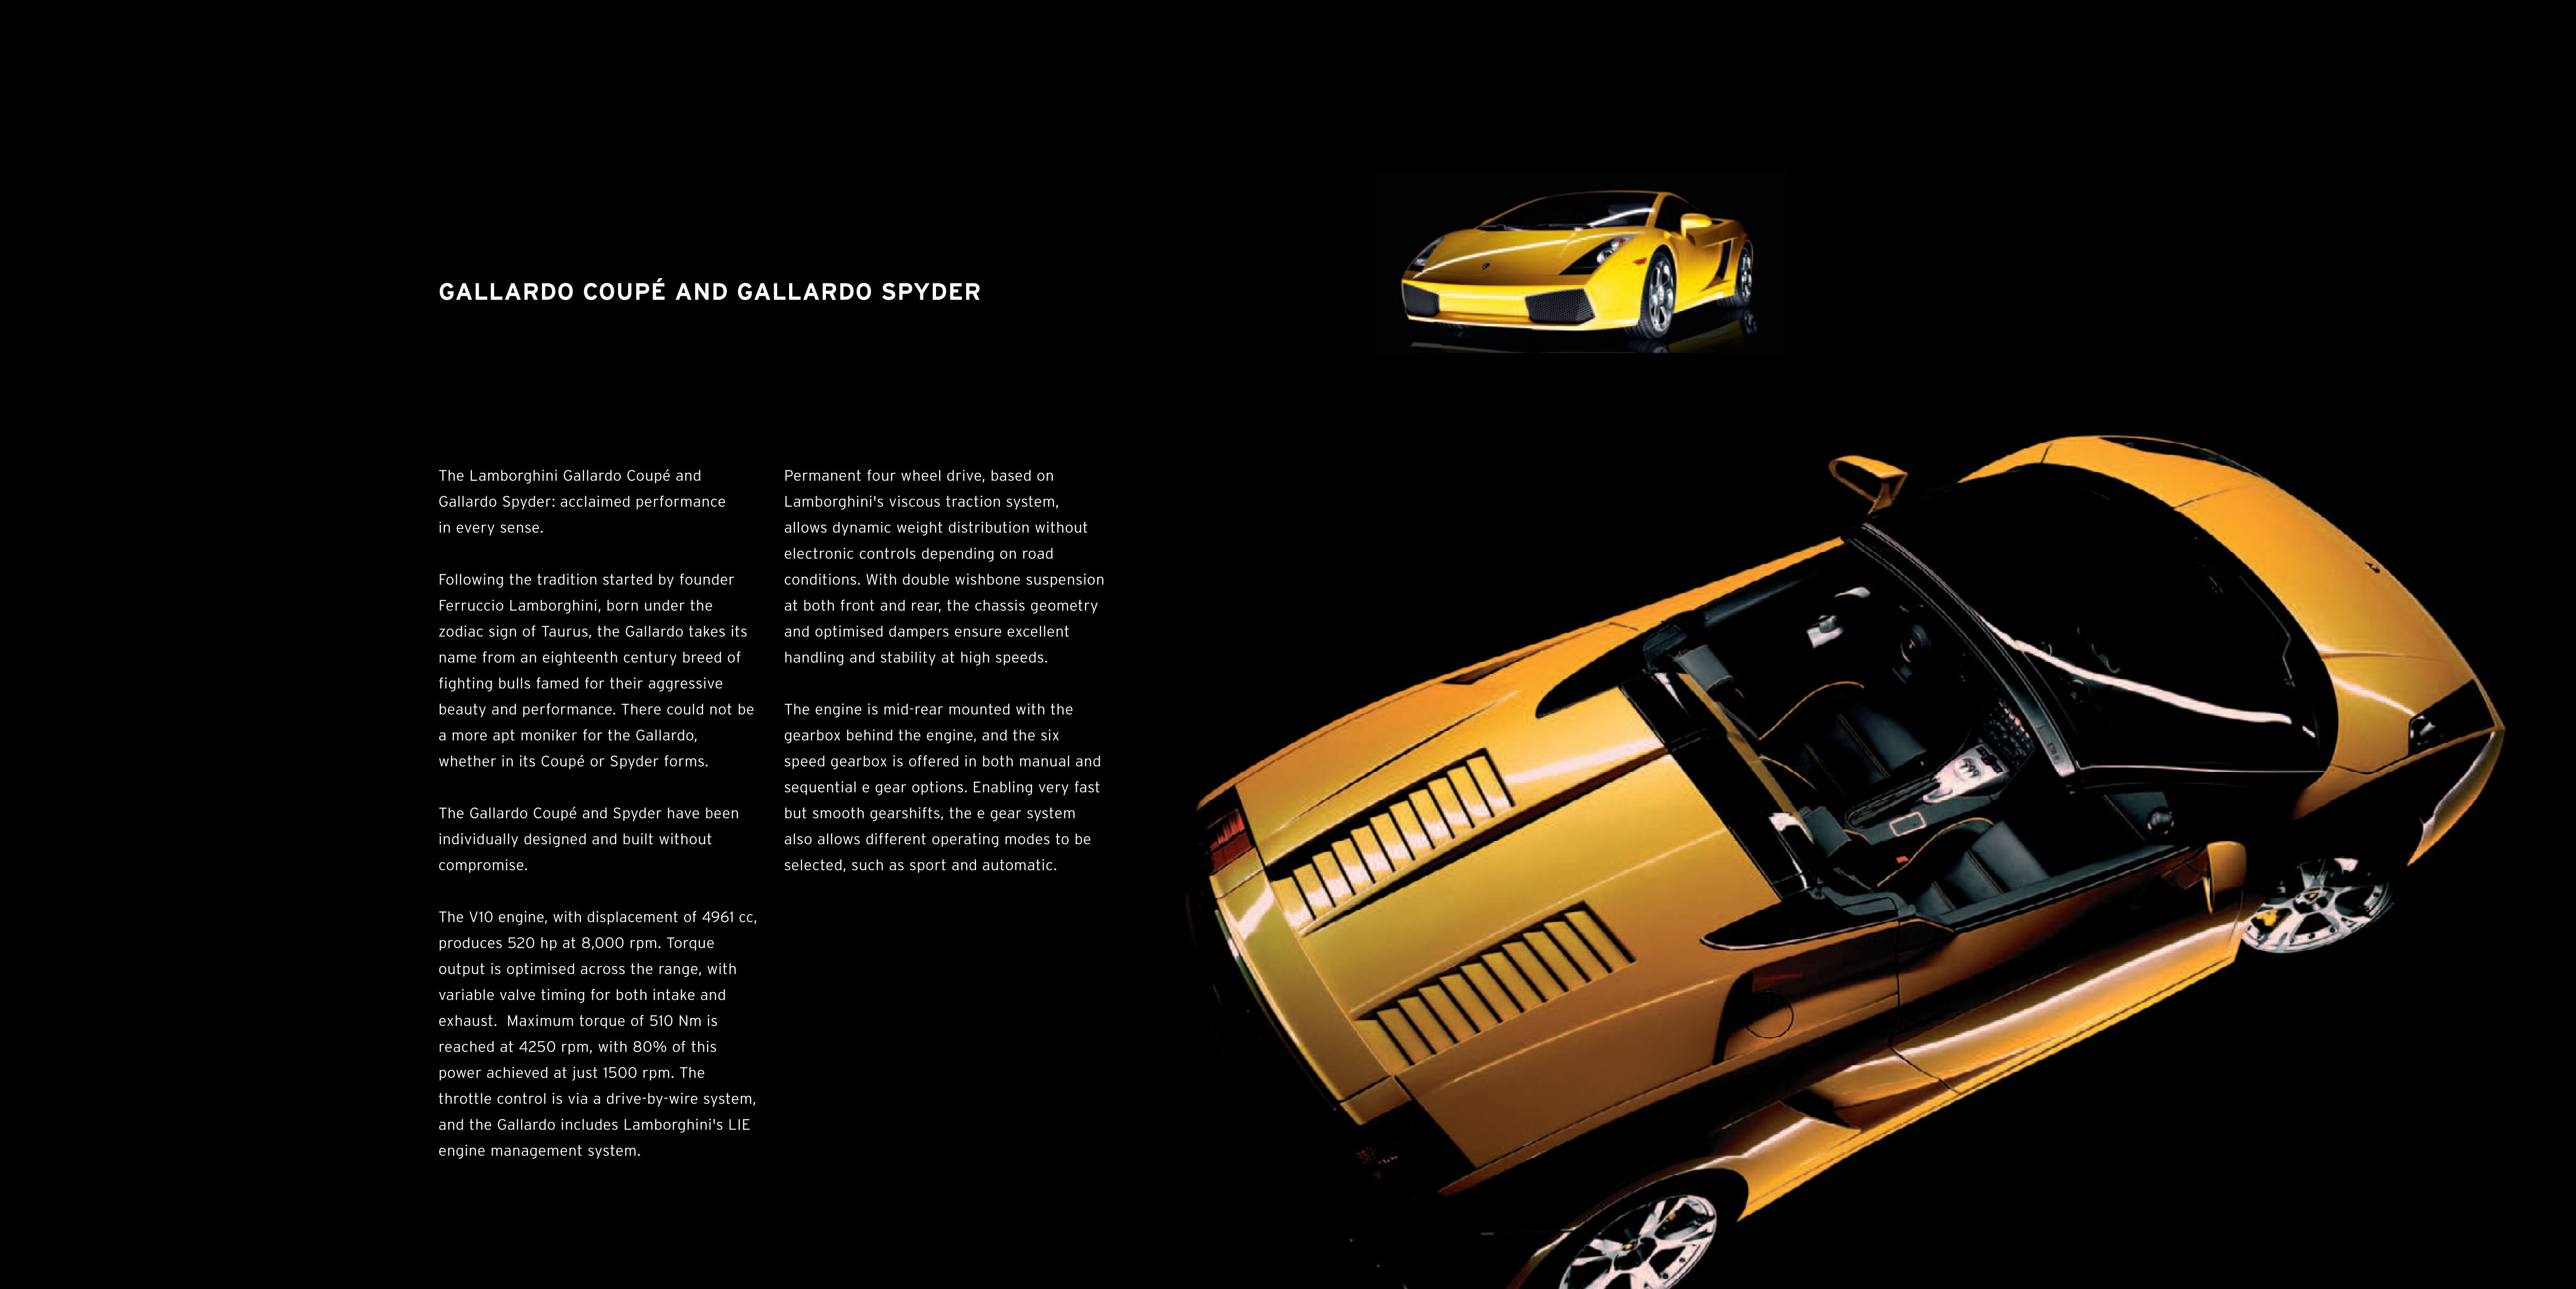 LAMBORGHINI GALLARDO BROCHURE PDF DOWNLOAD